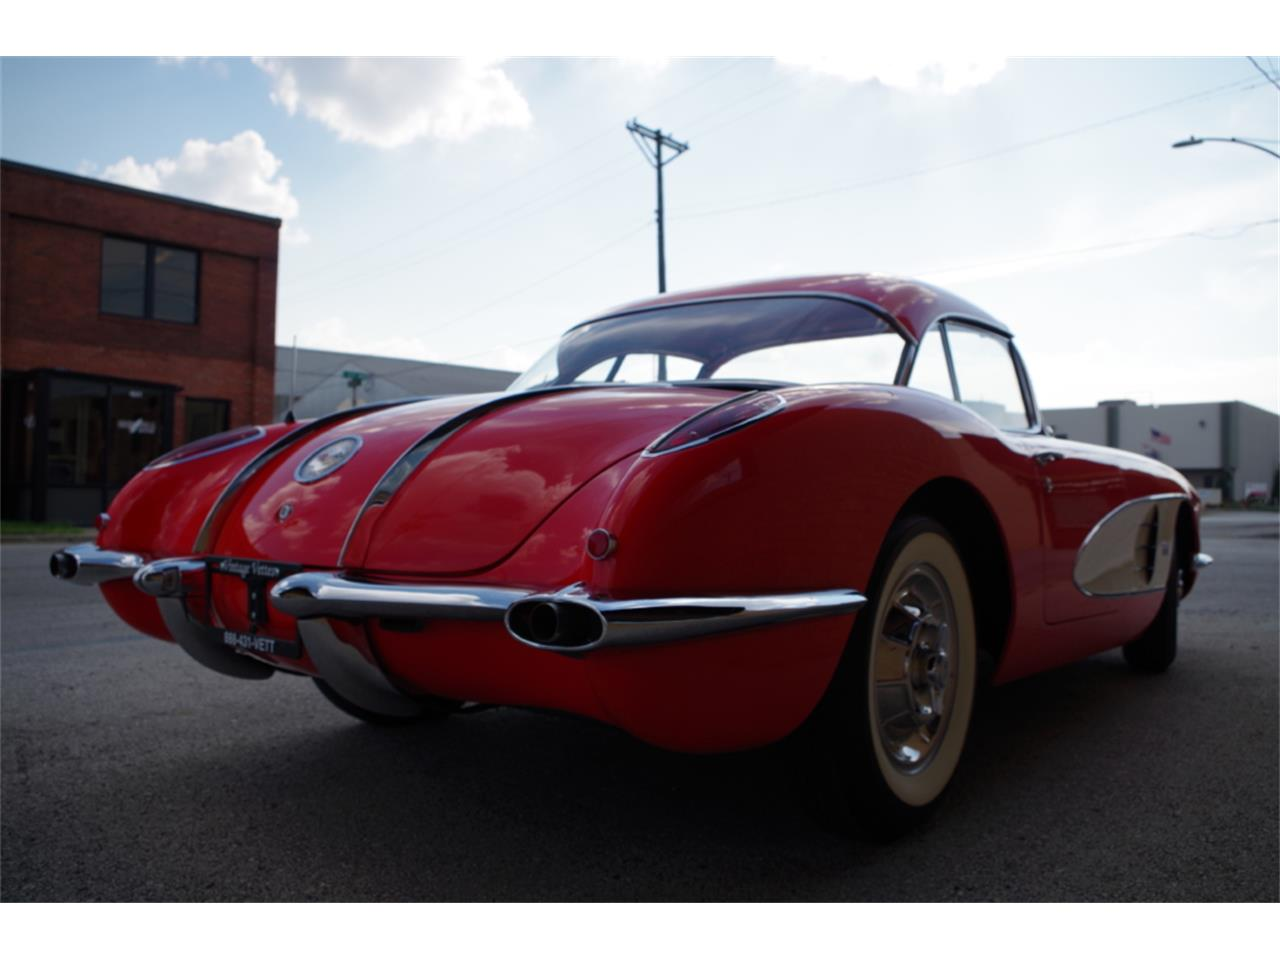 Large Picture of Classic 1958 Corvette located in Missouri - $139,900.00 Offered by Vintage Vettes, LLC - R23F